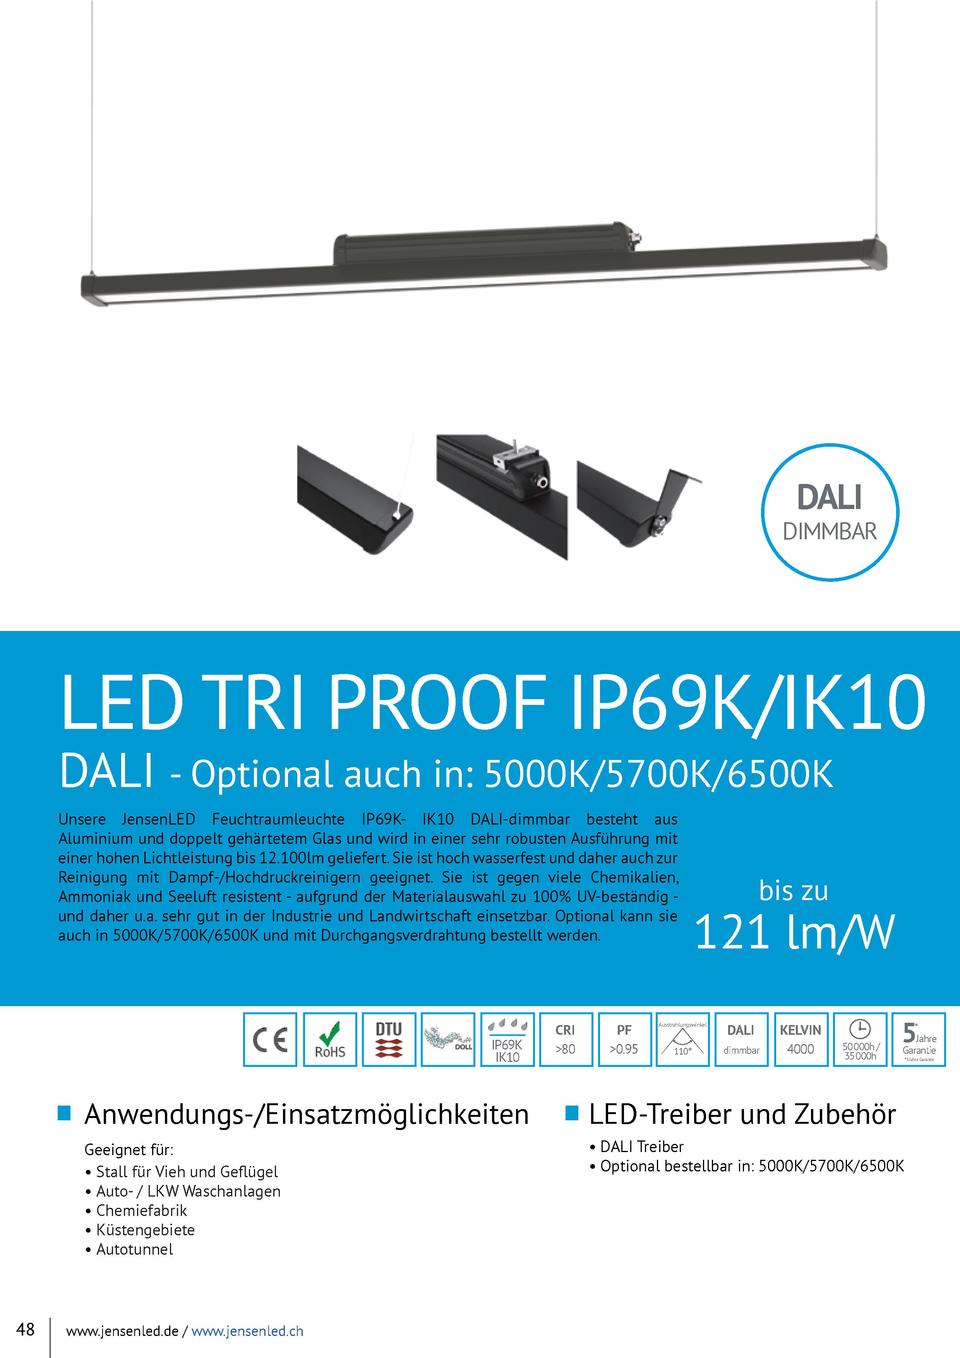 DALI  DIMMBAR  LED TRI PROOF IP69K IK10  DALI - Optional auch in  5000K 5700K 6500K Unsere JensenLED Feuchtraumleuchte IP6...